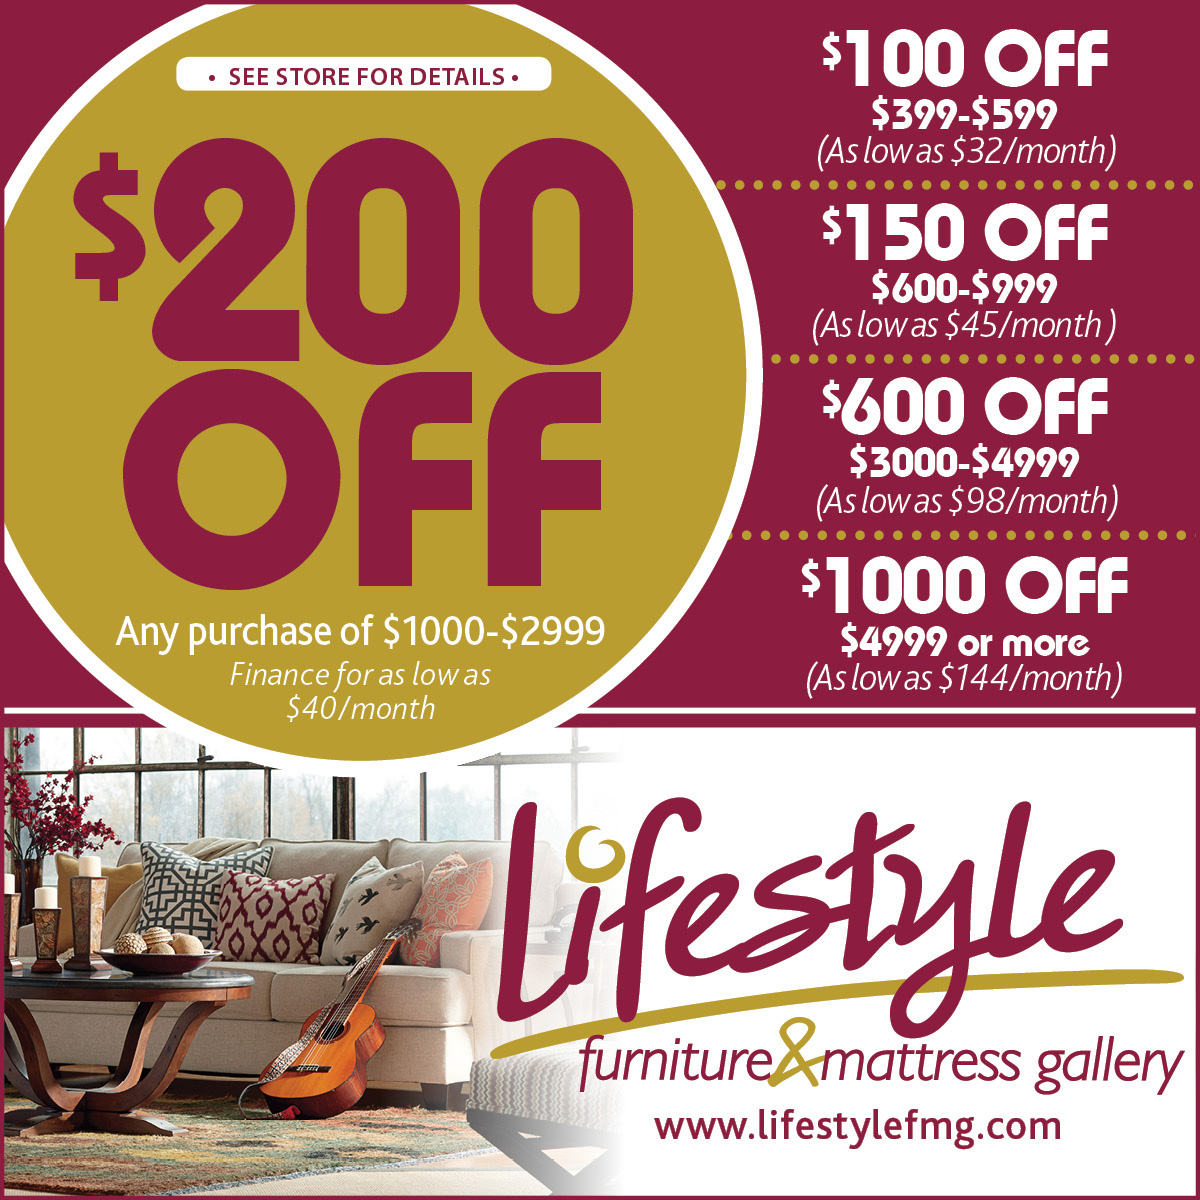 lifestyle-coupon-for-social-media.jpg